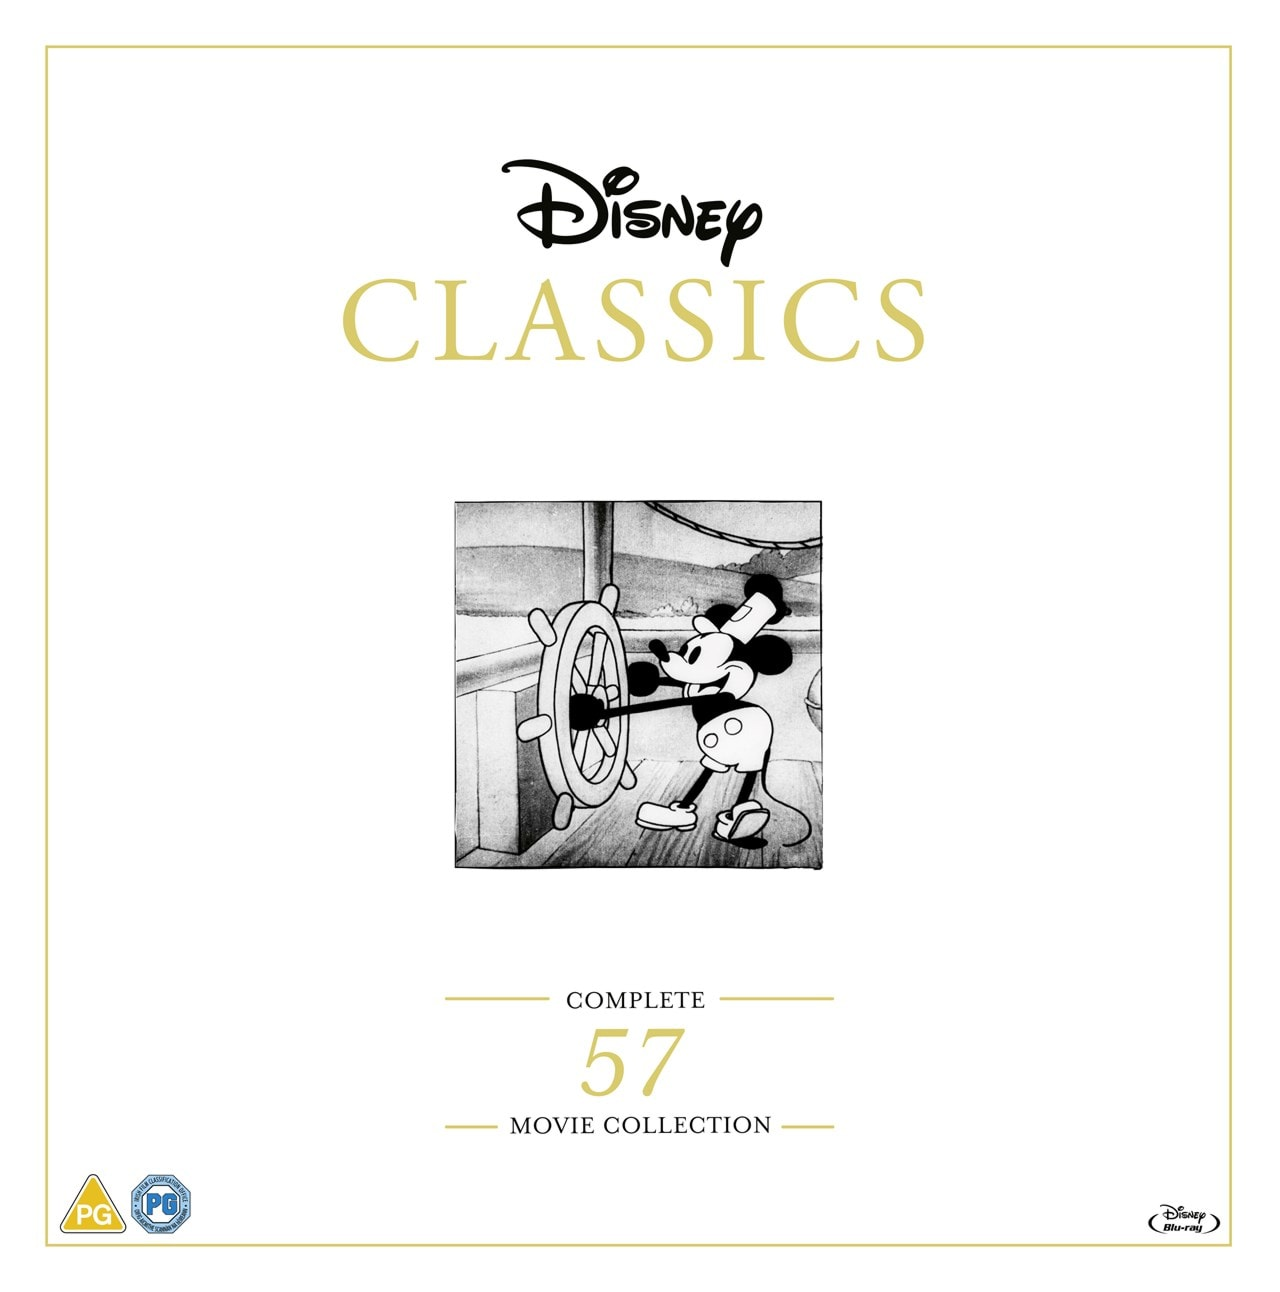 Disney Classics: Complete 57 Movie Collection - 2